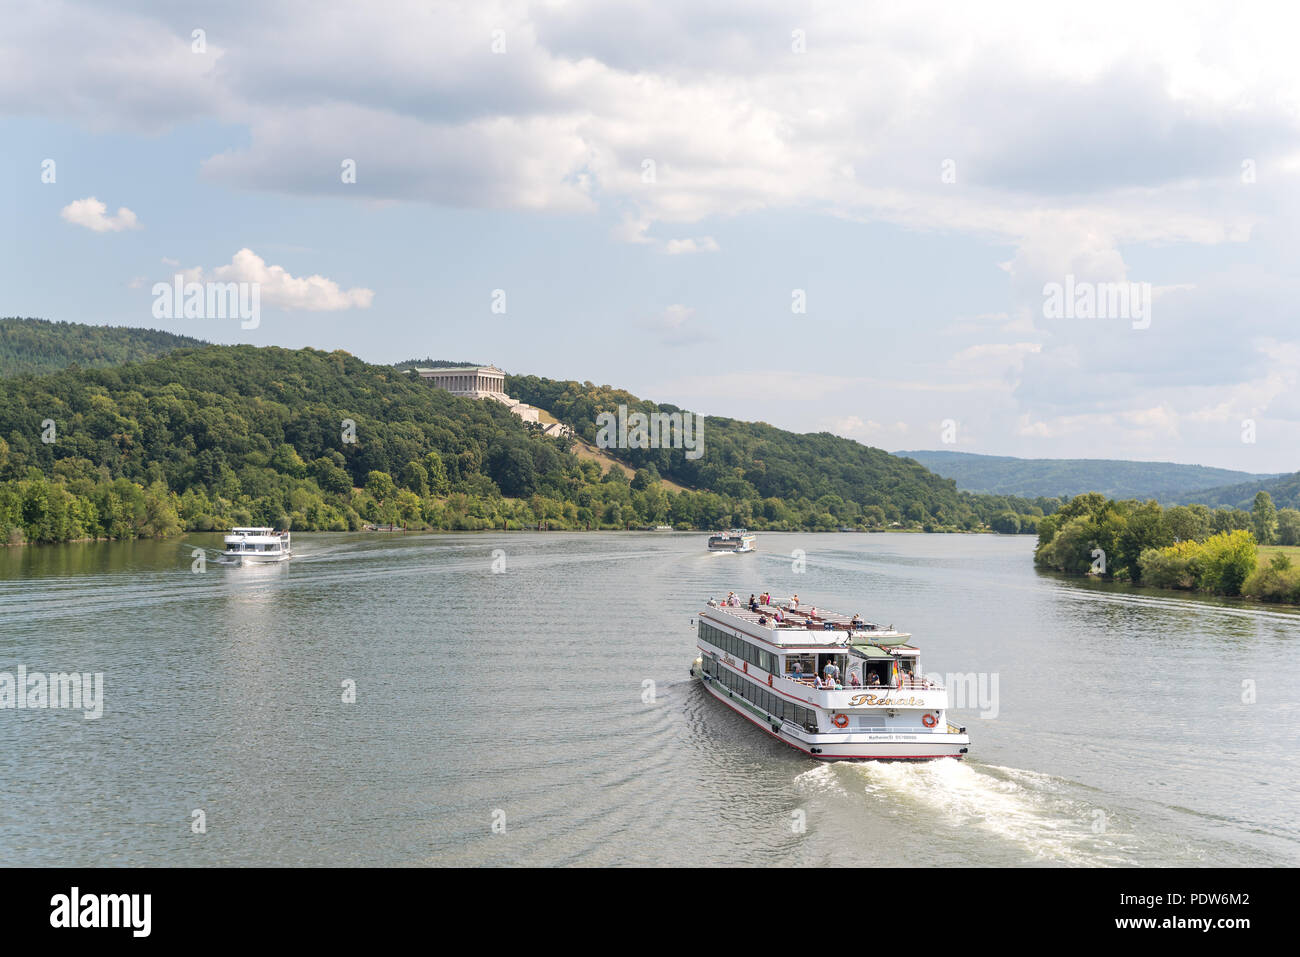 Donaustauf, Bavaria, Germany - July 27, 2018 : Renate ship with tourists sails on Danube River to Walhalla memorial, tour tourism and famous places - Stock Image